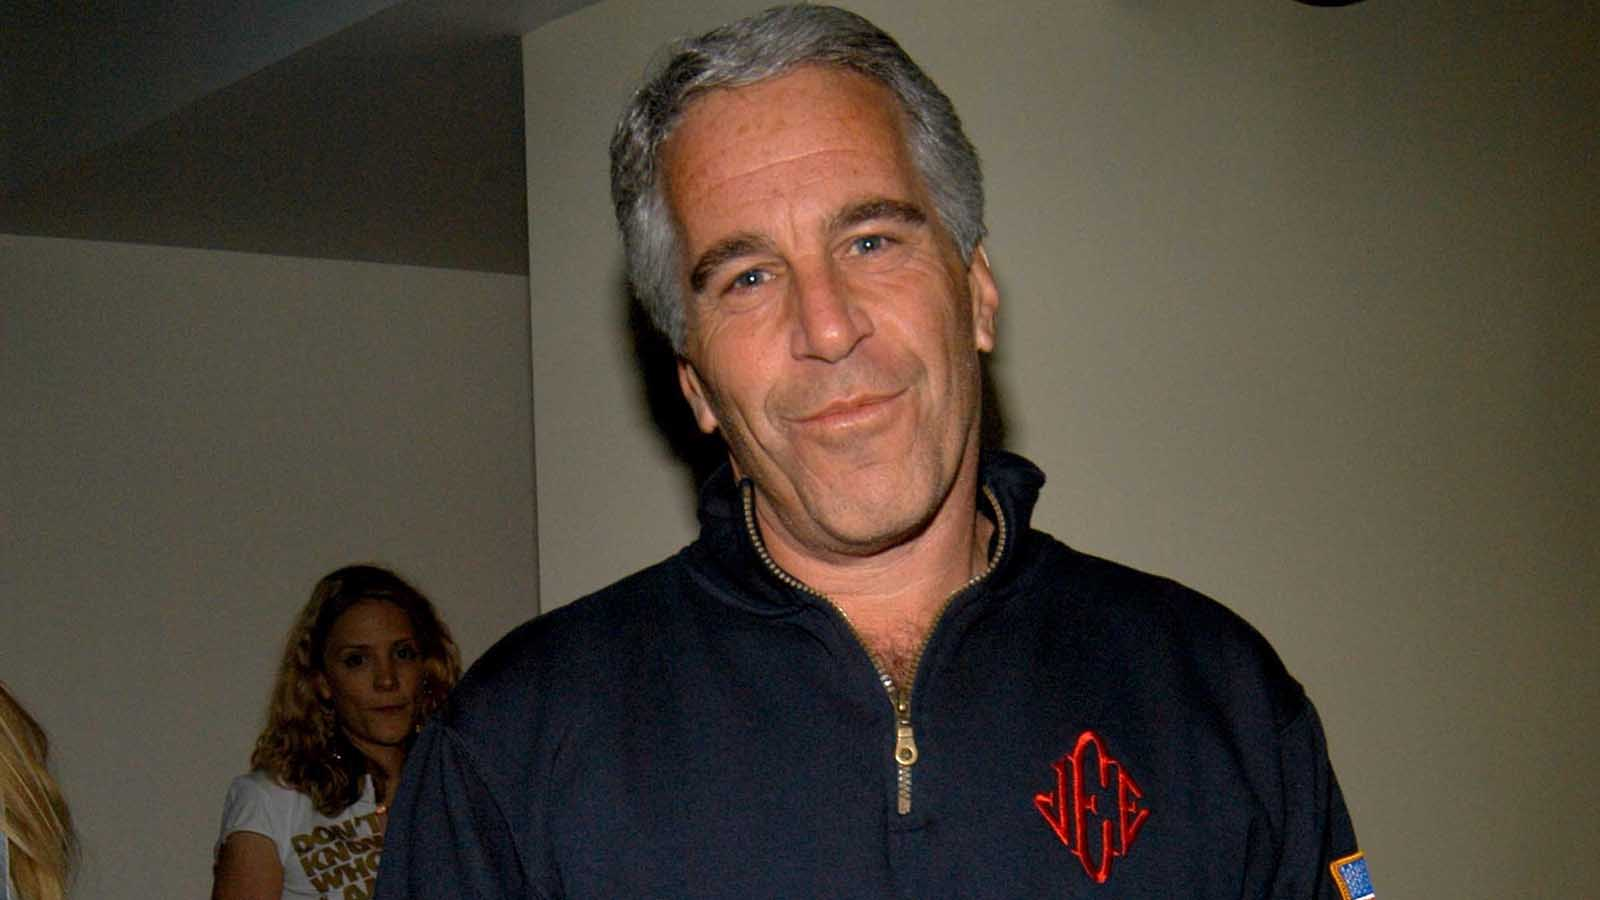 New details in a 2019 lawsuit against Jeffrey Epstein are alleging the mogul would namedrop his famous friends as an intimidation technique.